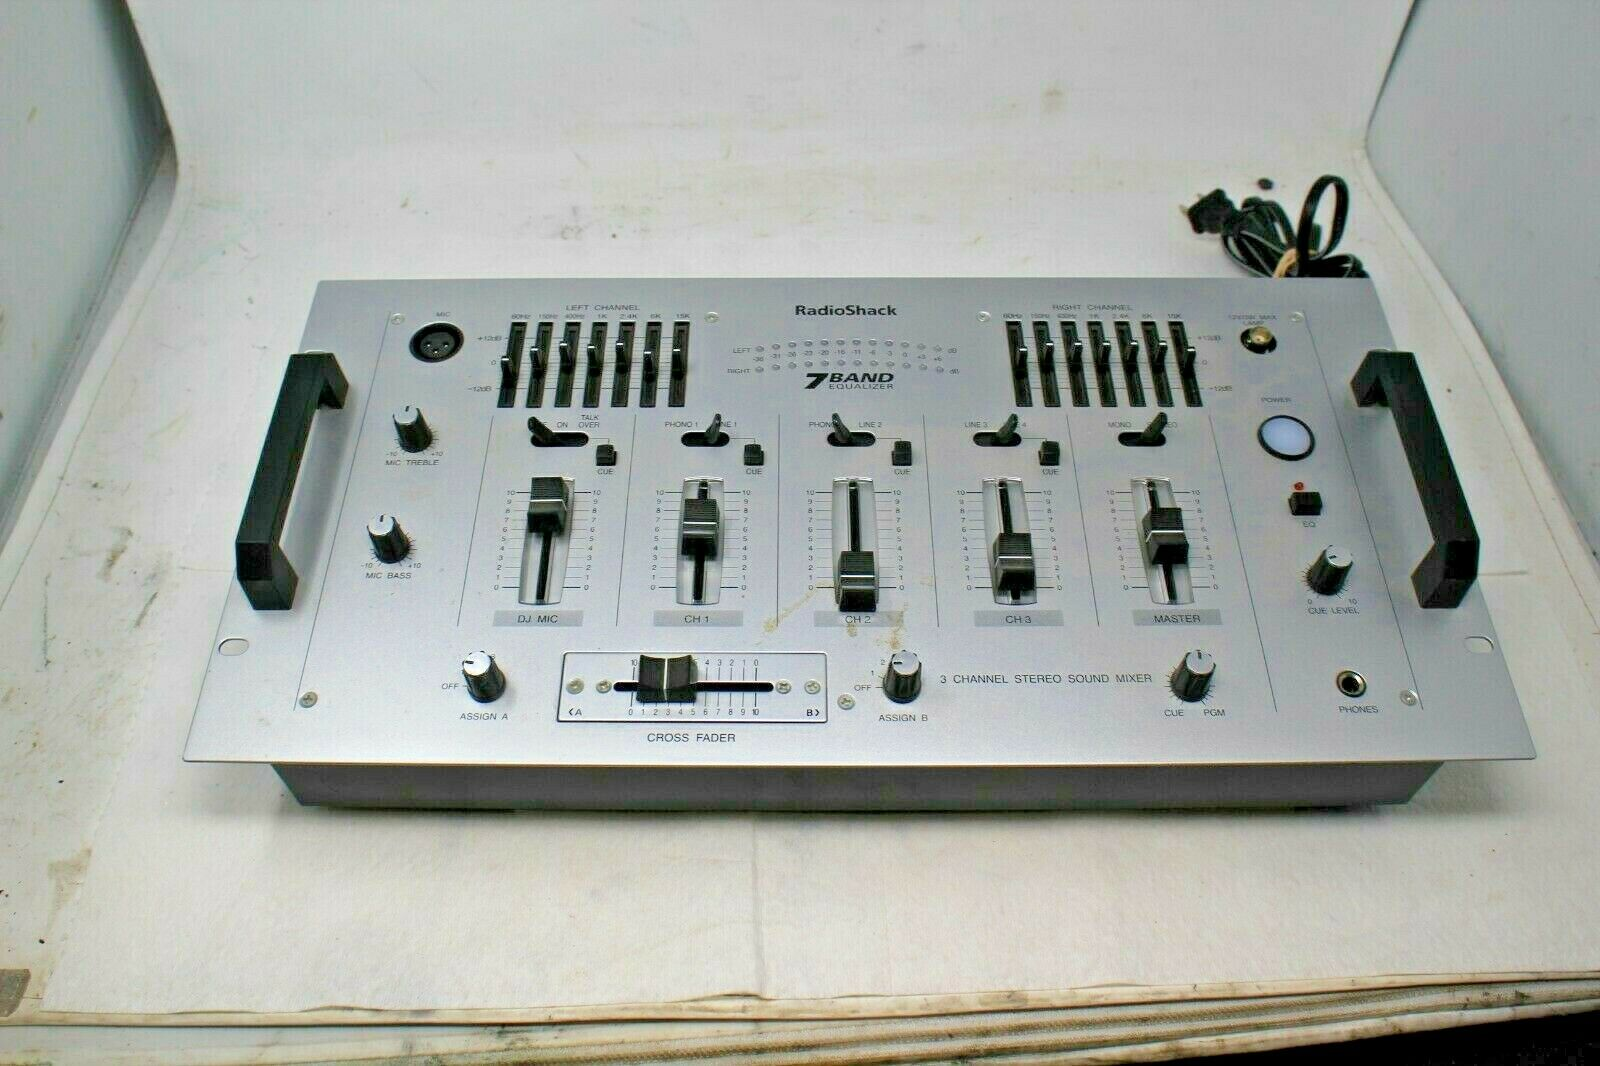 RadioShack 3 Channel Stereo Sound Mixer 7 Band Equalizer FREE SHIPPING. Buy it now for 79.99